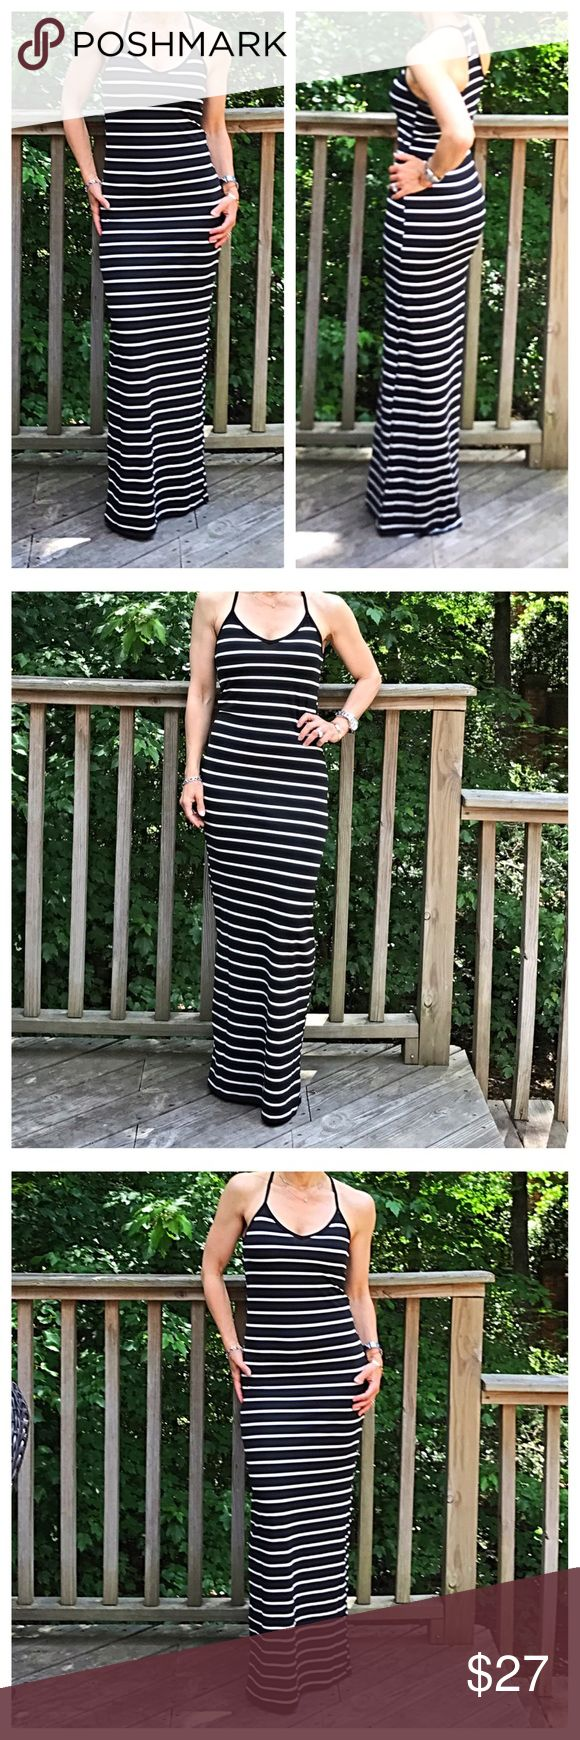 🆕 striped tank maxi dress Black with white stripes tank maxi dress this dress has spandex PLEASE Use the Poshmark new option you can purchase and it will give you the option to pick the size you want ( all sizes are available) BUNDLE and save 10% ( no trades price is firm unless bundled) Dresses Maxi